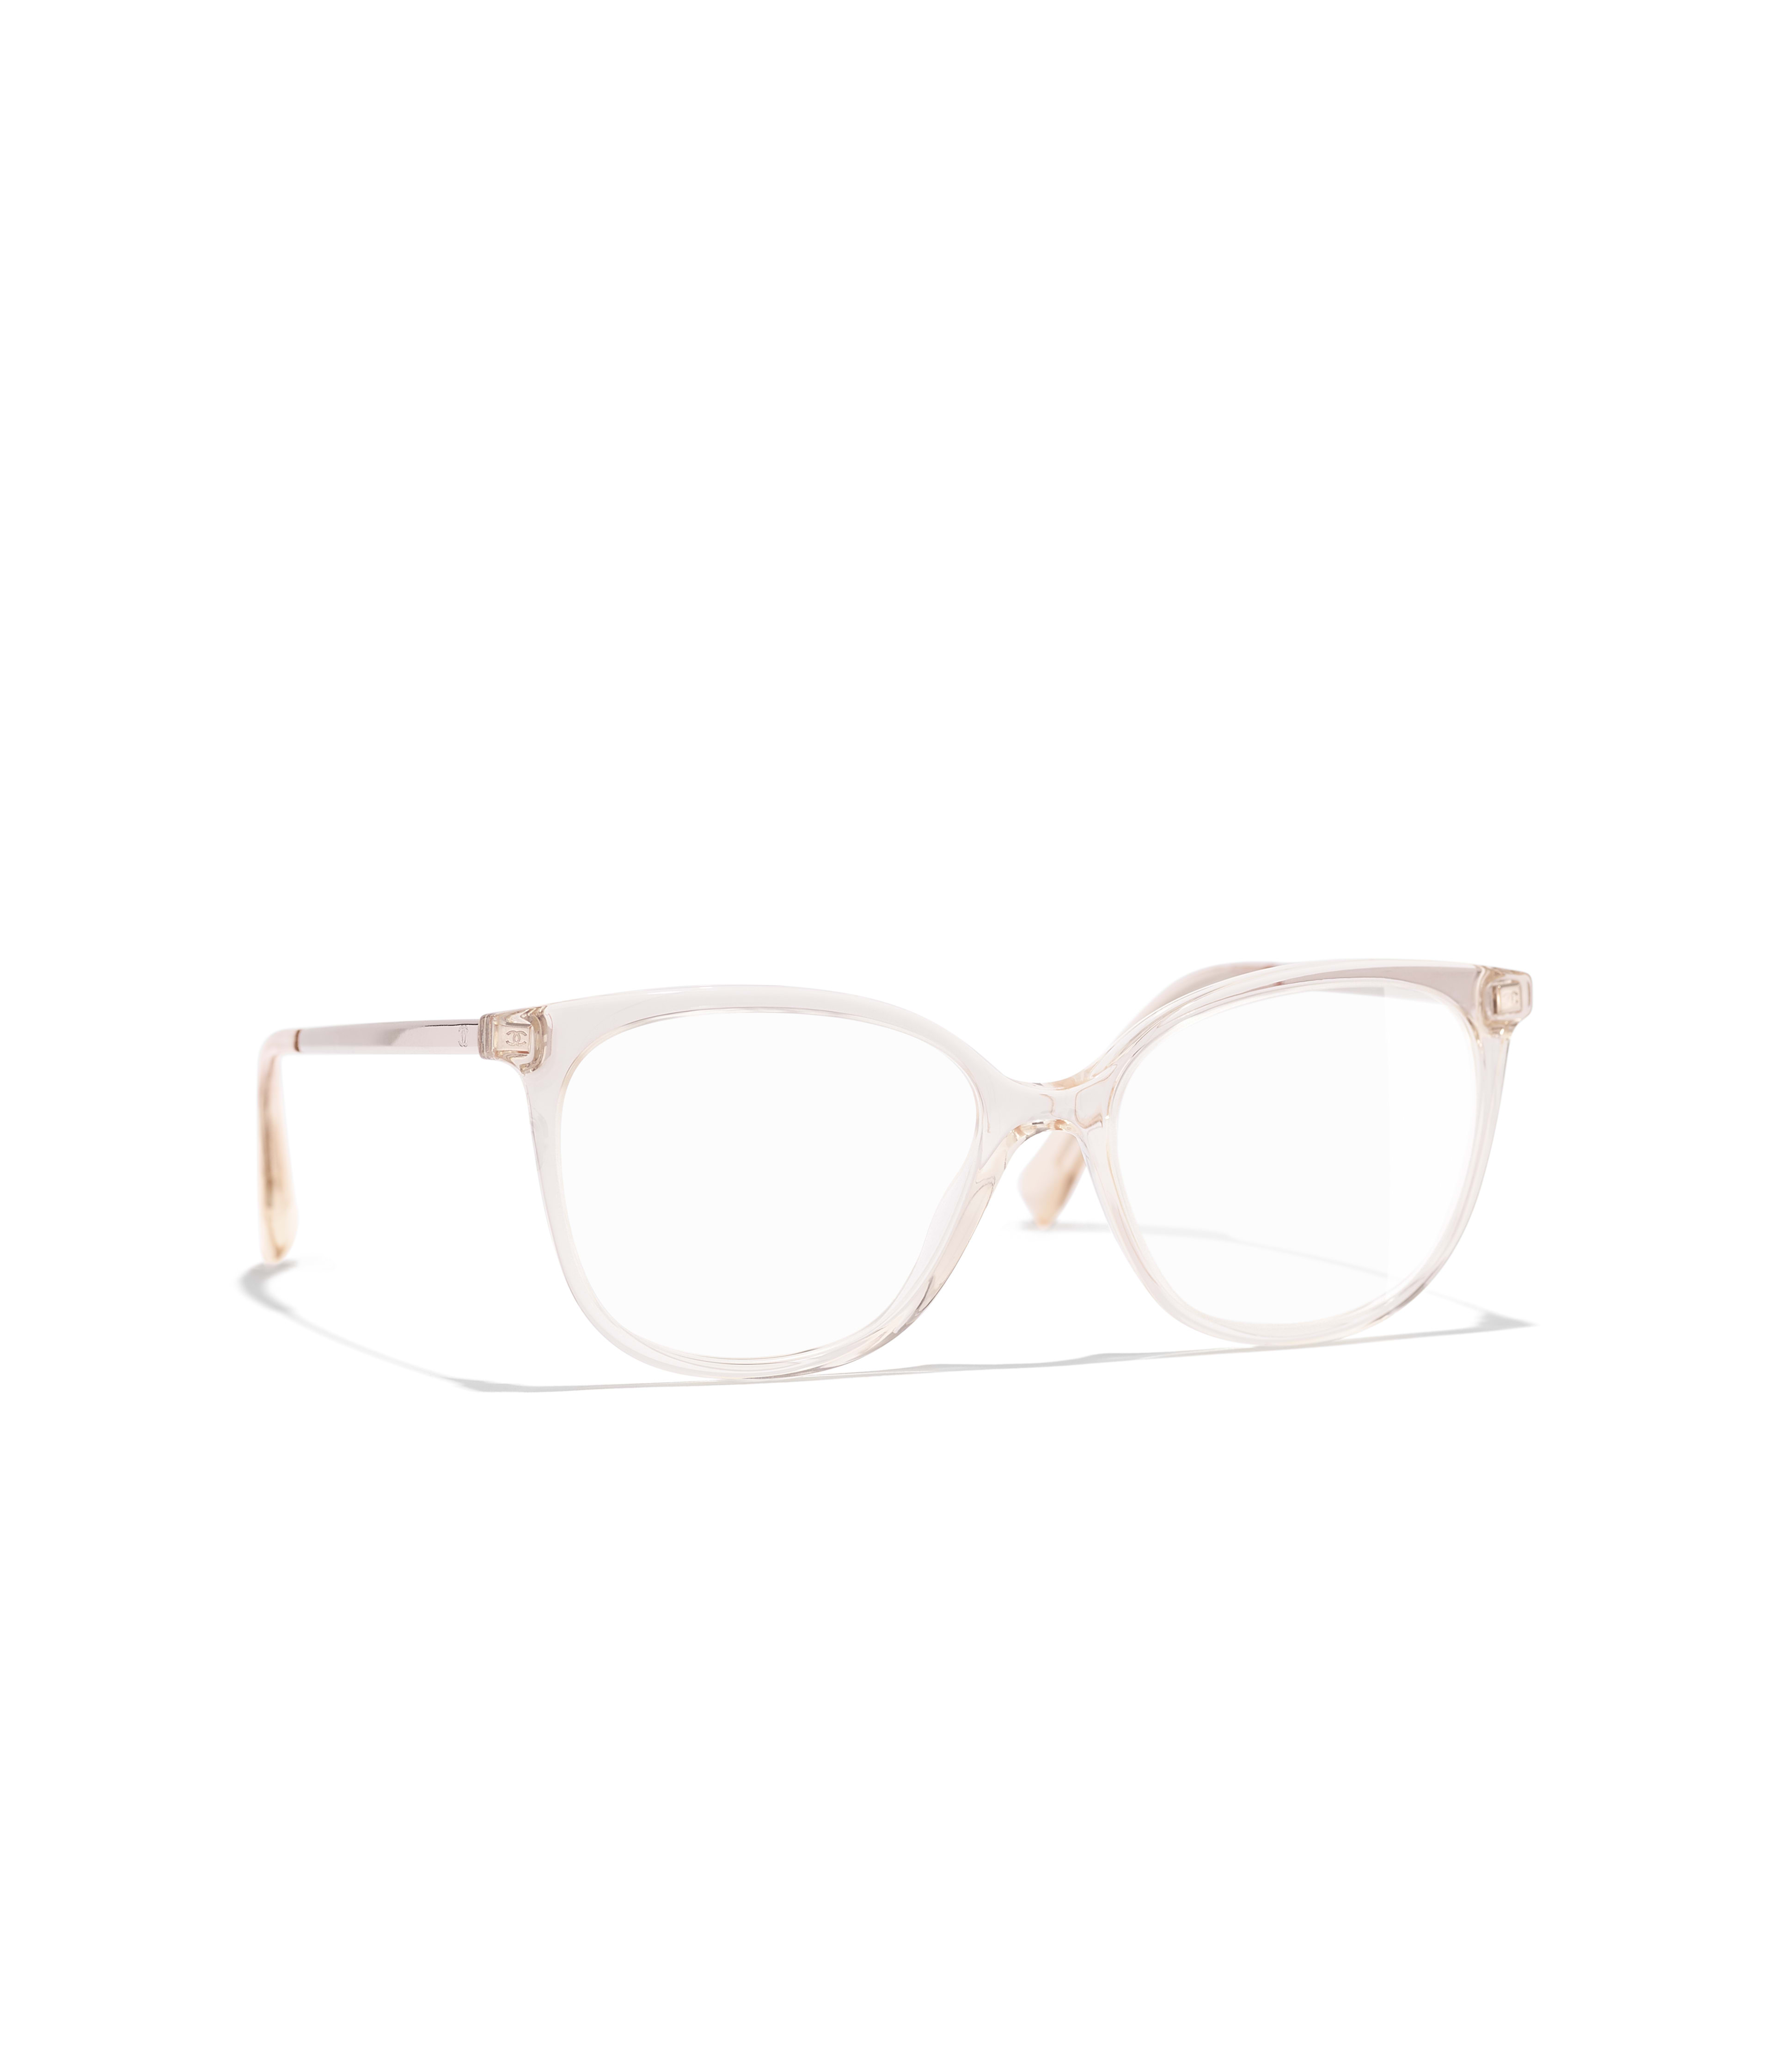 dae4a05d758cf Butterfly Eyeglasses Ref. 3383 1649